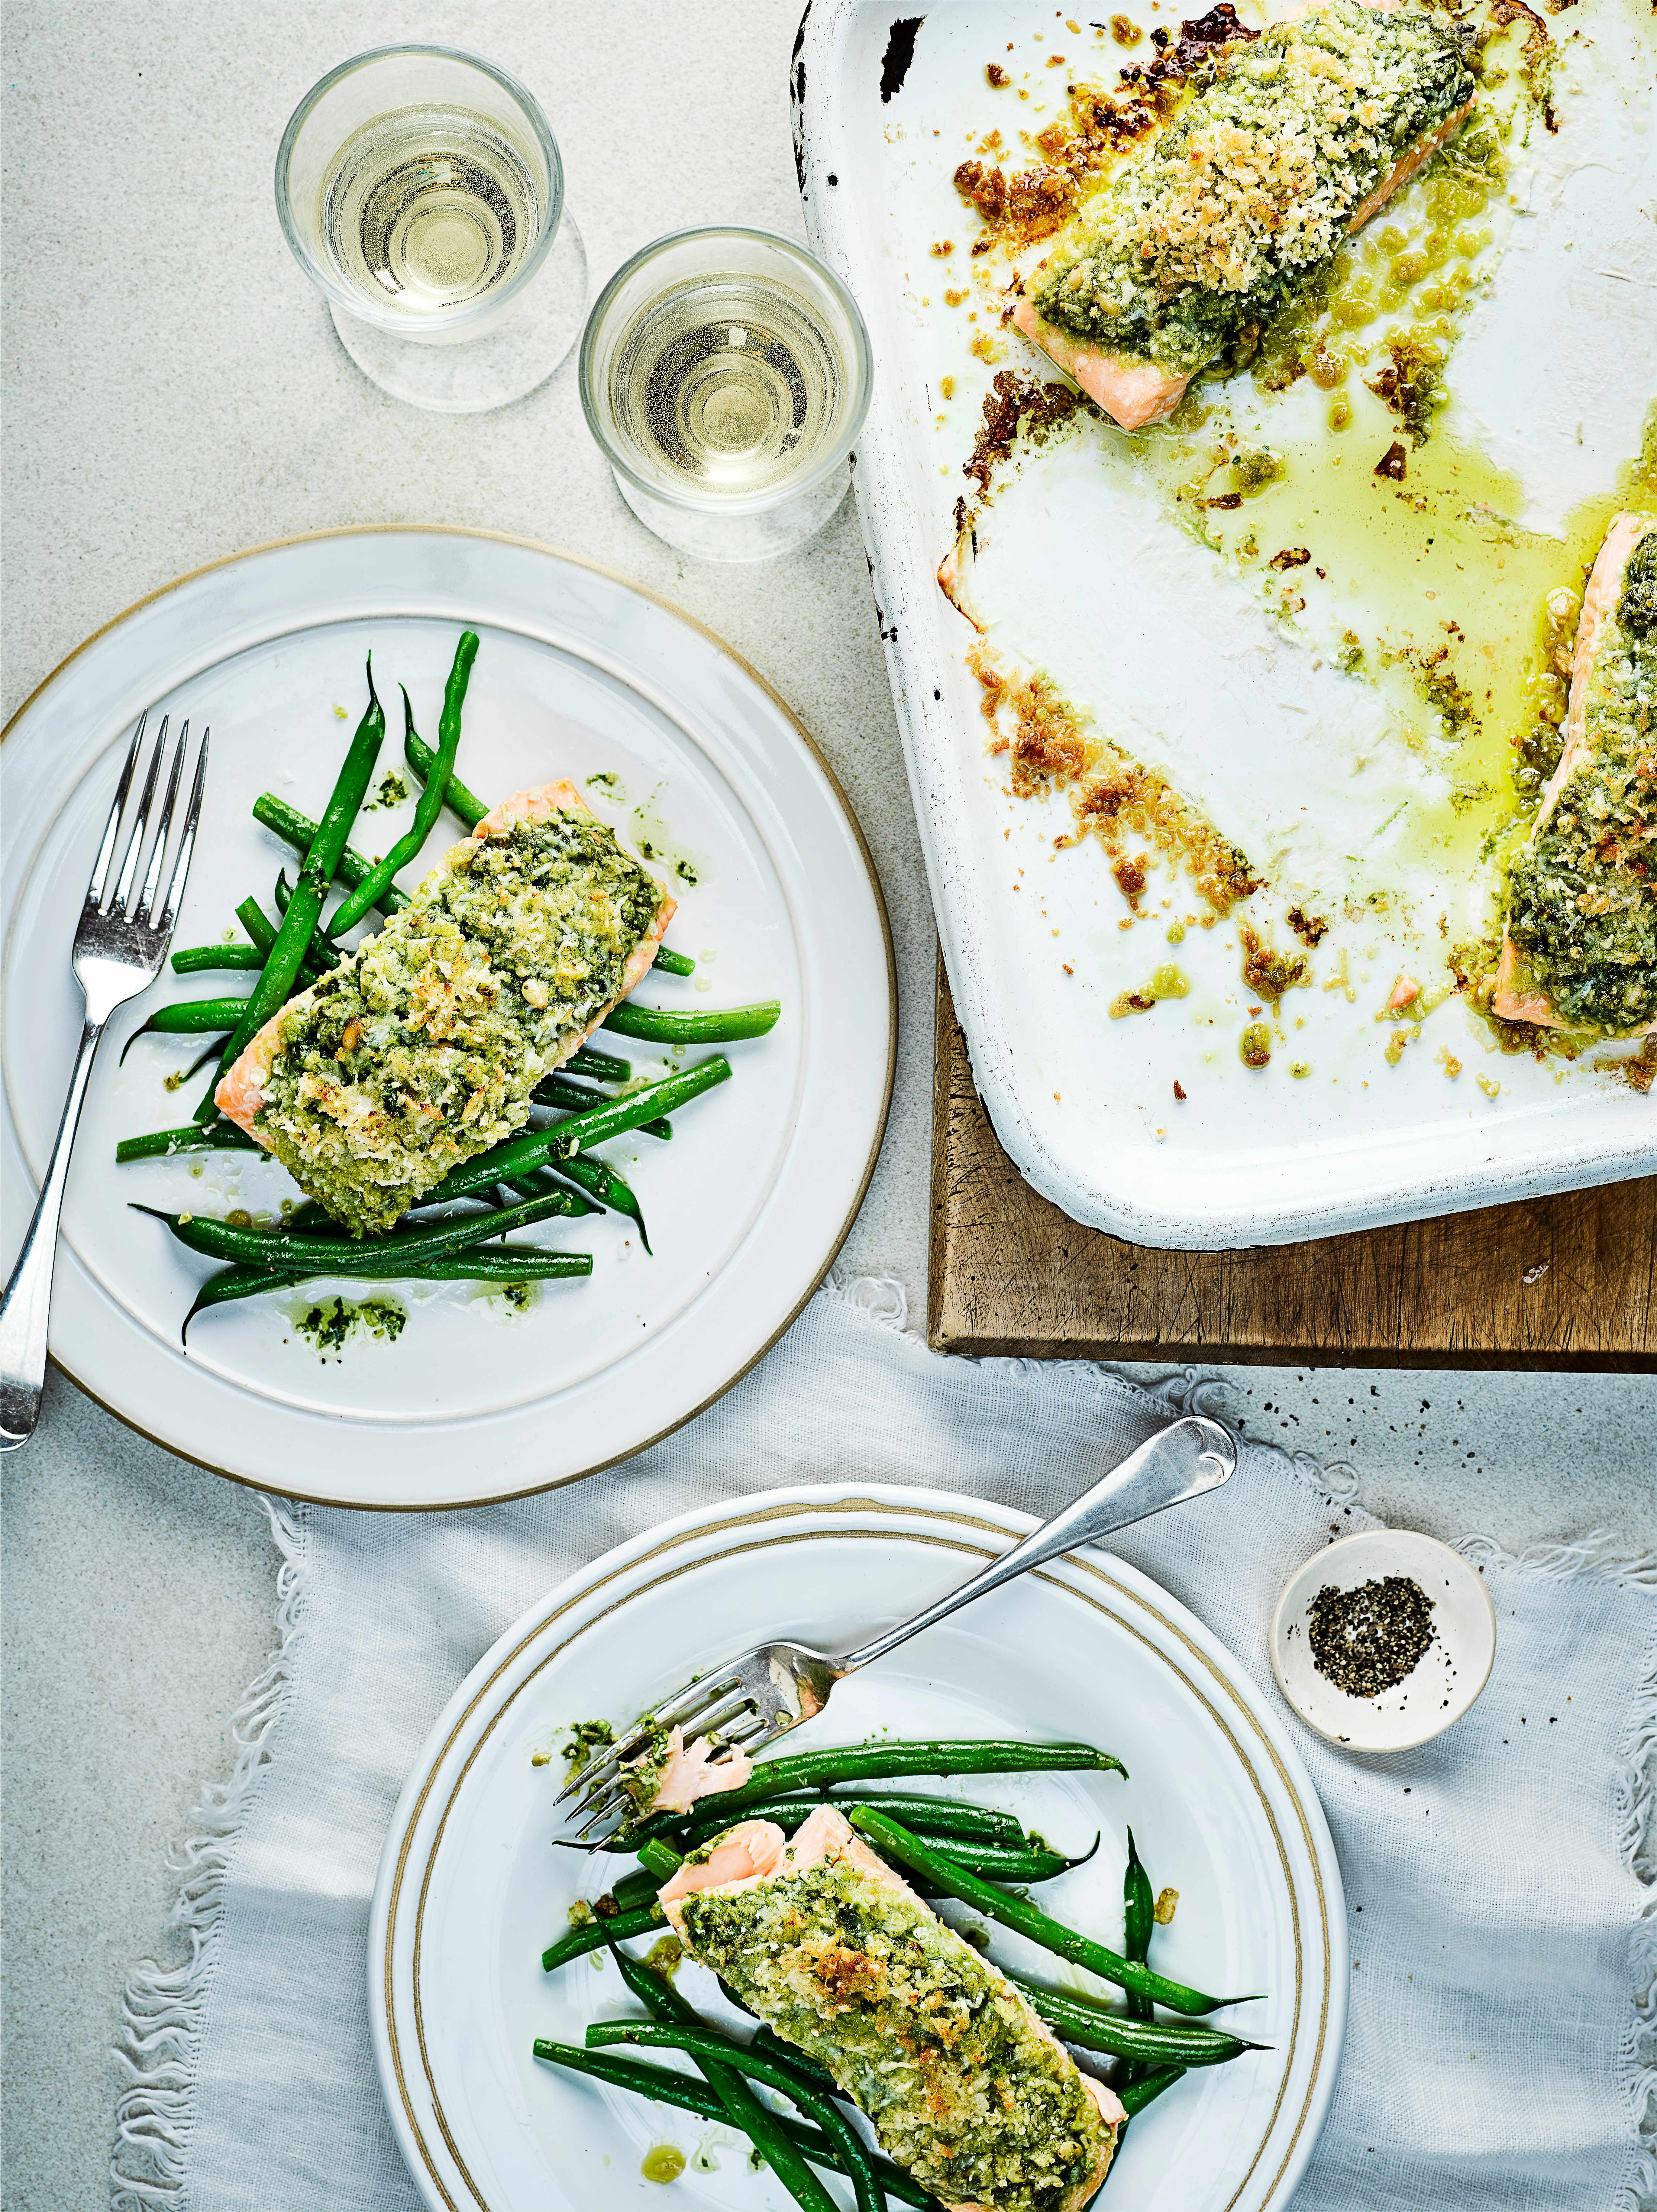 Salmon Recipe With Pesto Sauce Crust